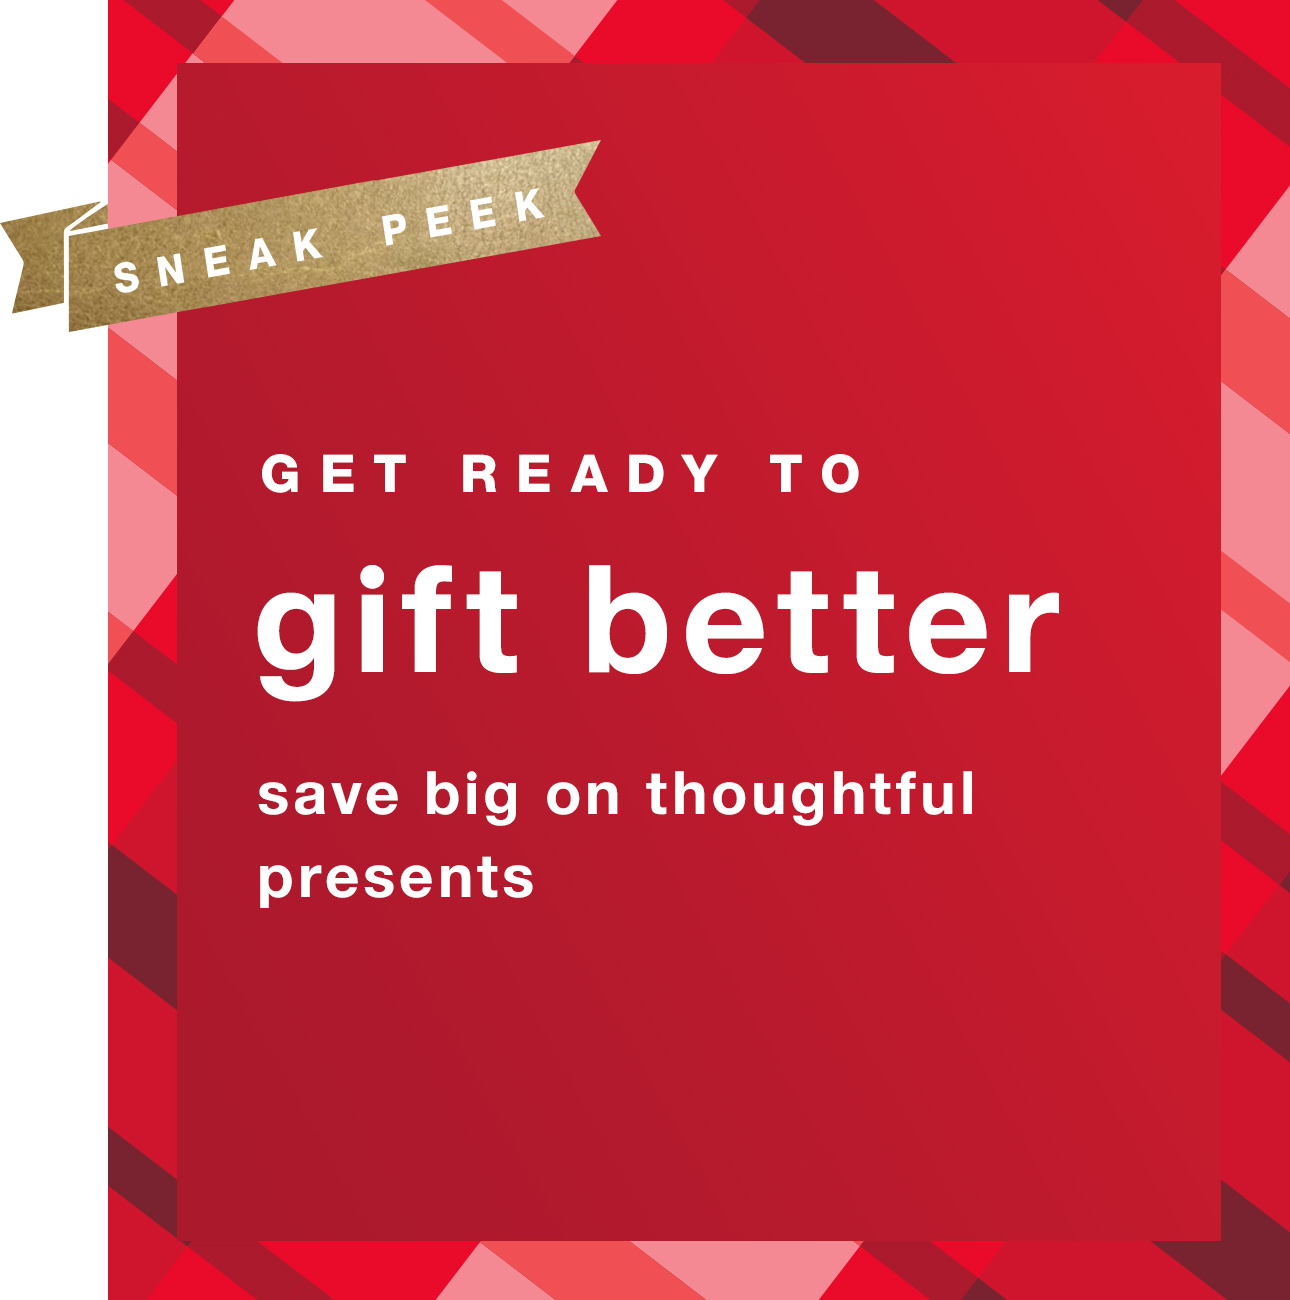 Sneak Peek | Get Ready to Gift Better: Save Big on Thoughtful Presents - Shop Now